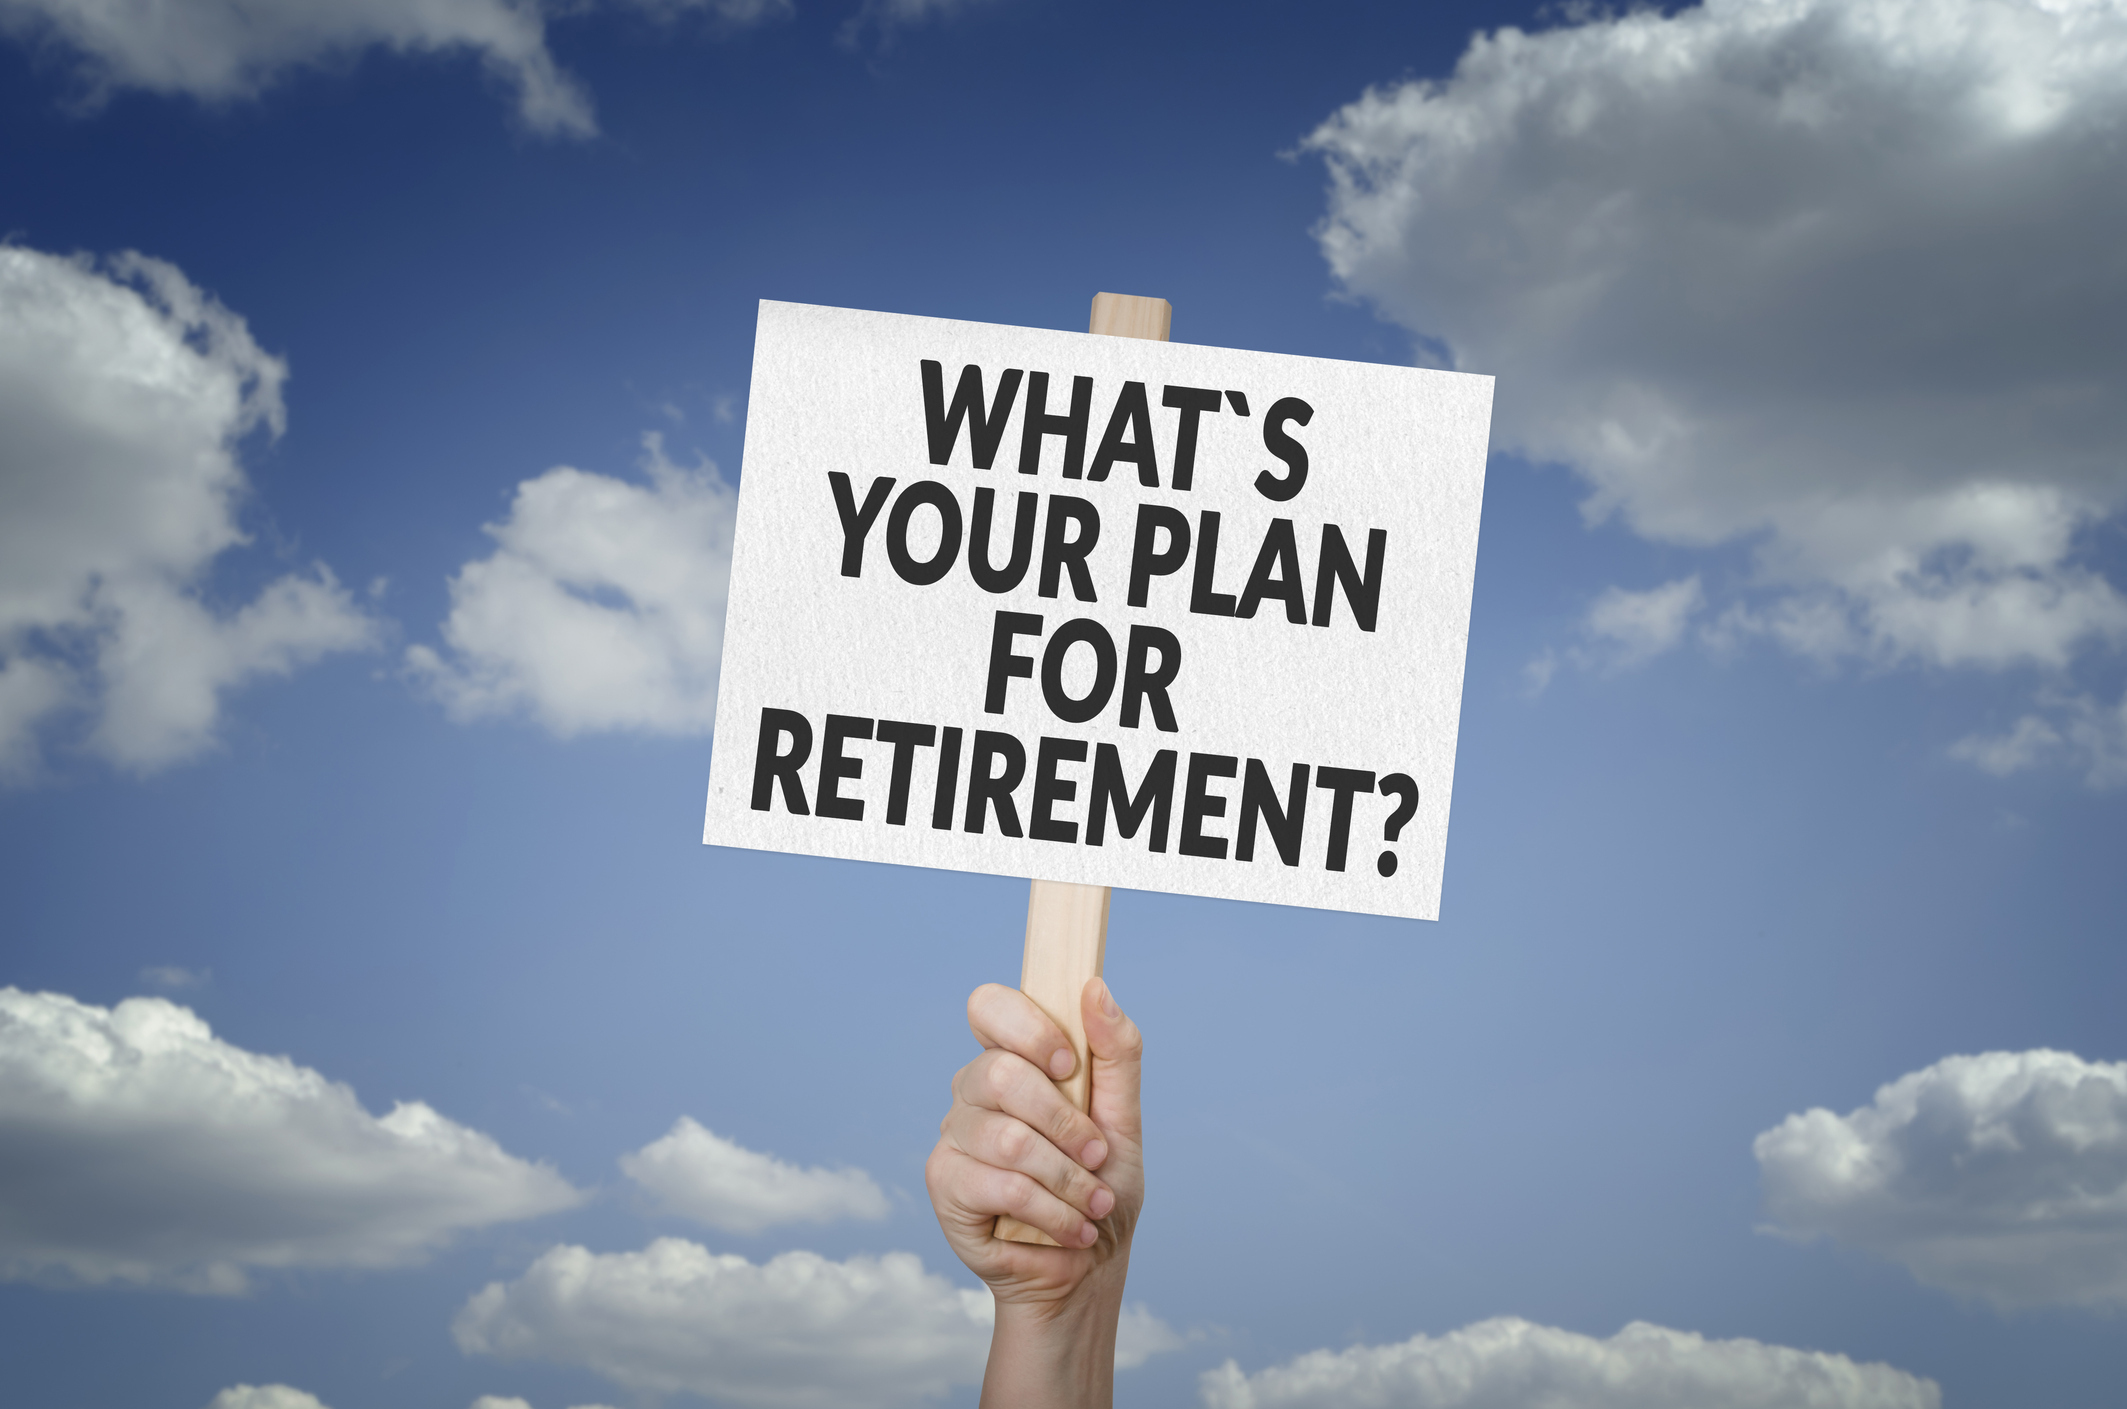 How Will 78 Million Baby Boomers Pay for Their Retirement Years?